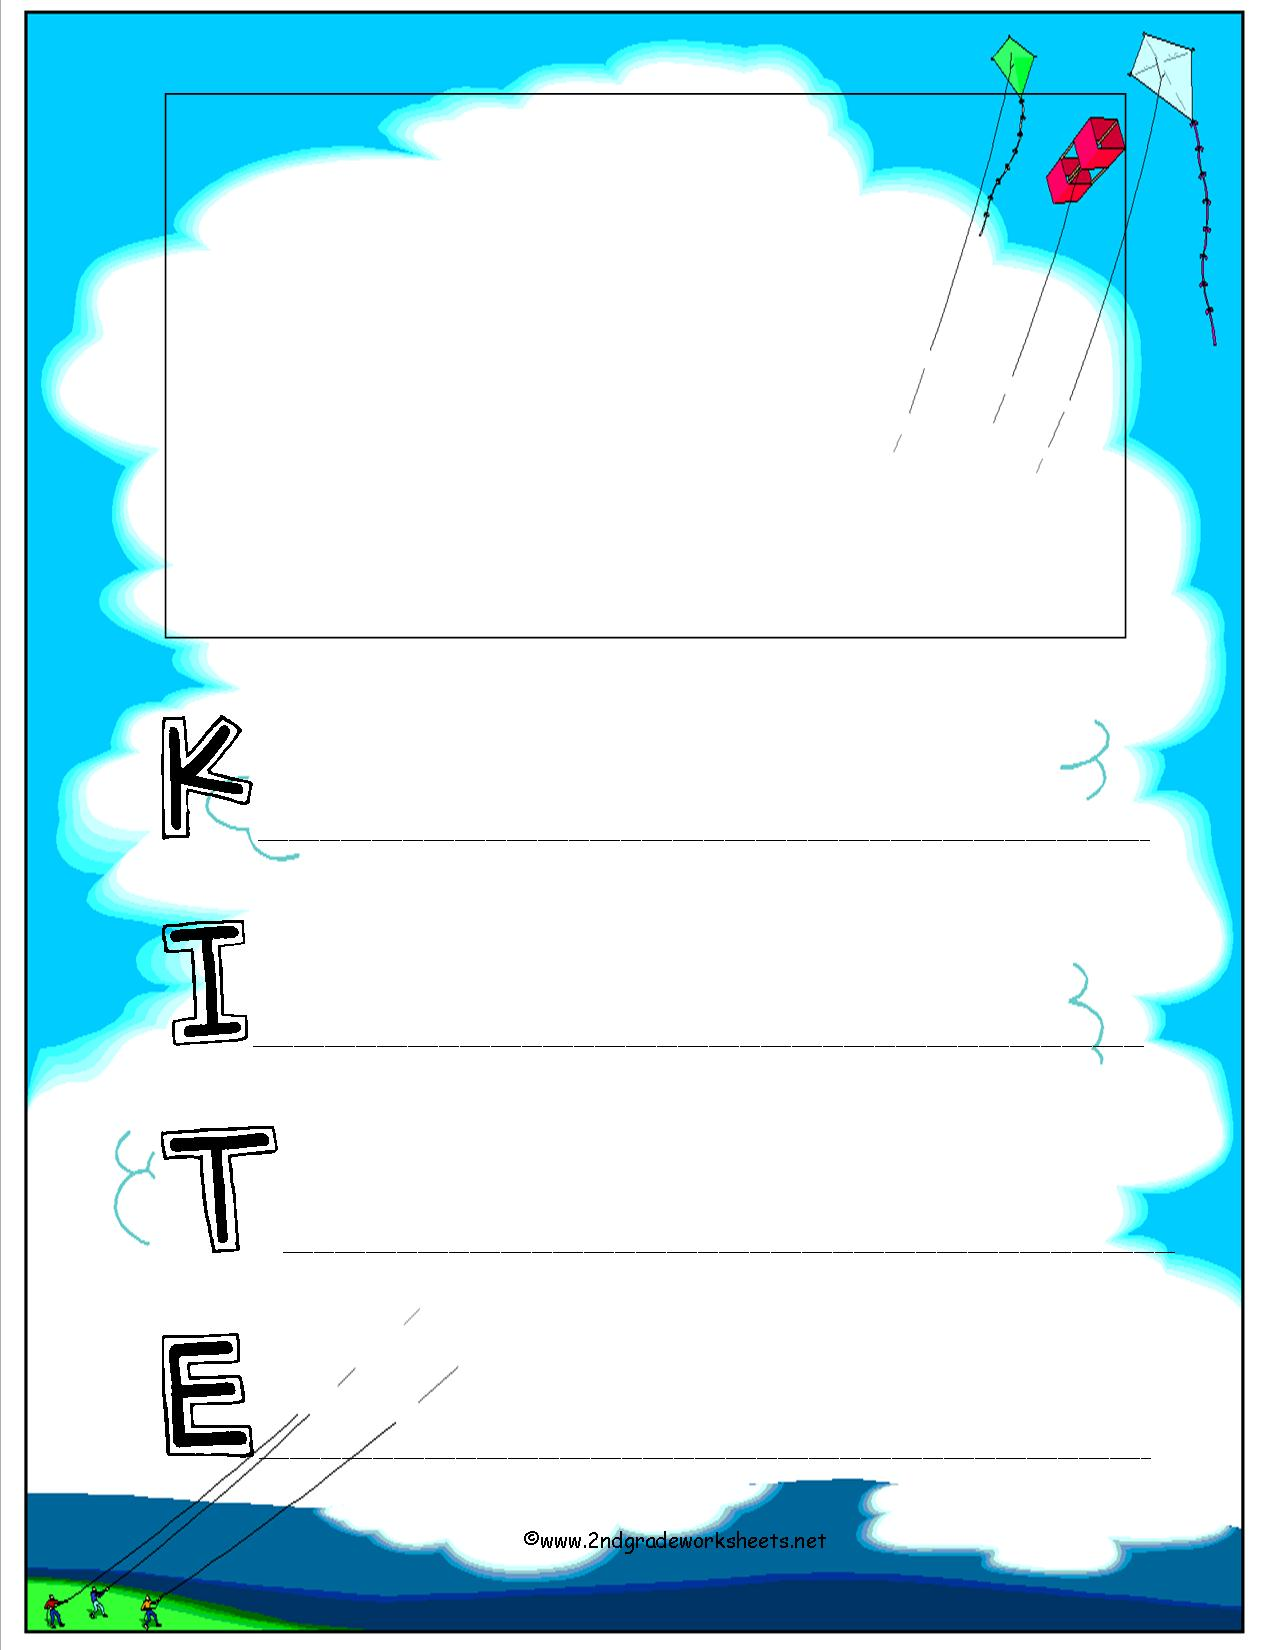 Kite Quotes And Poetry Quotesgram